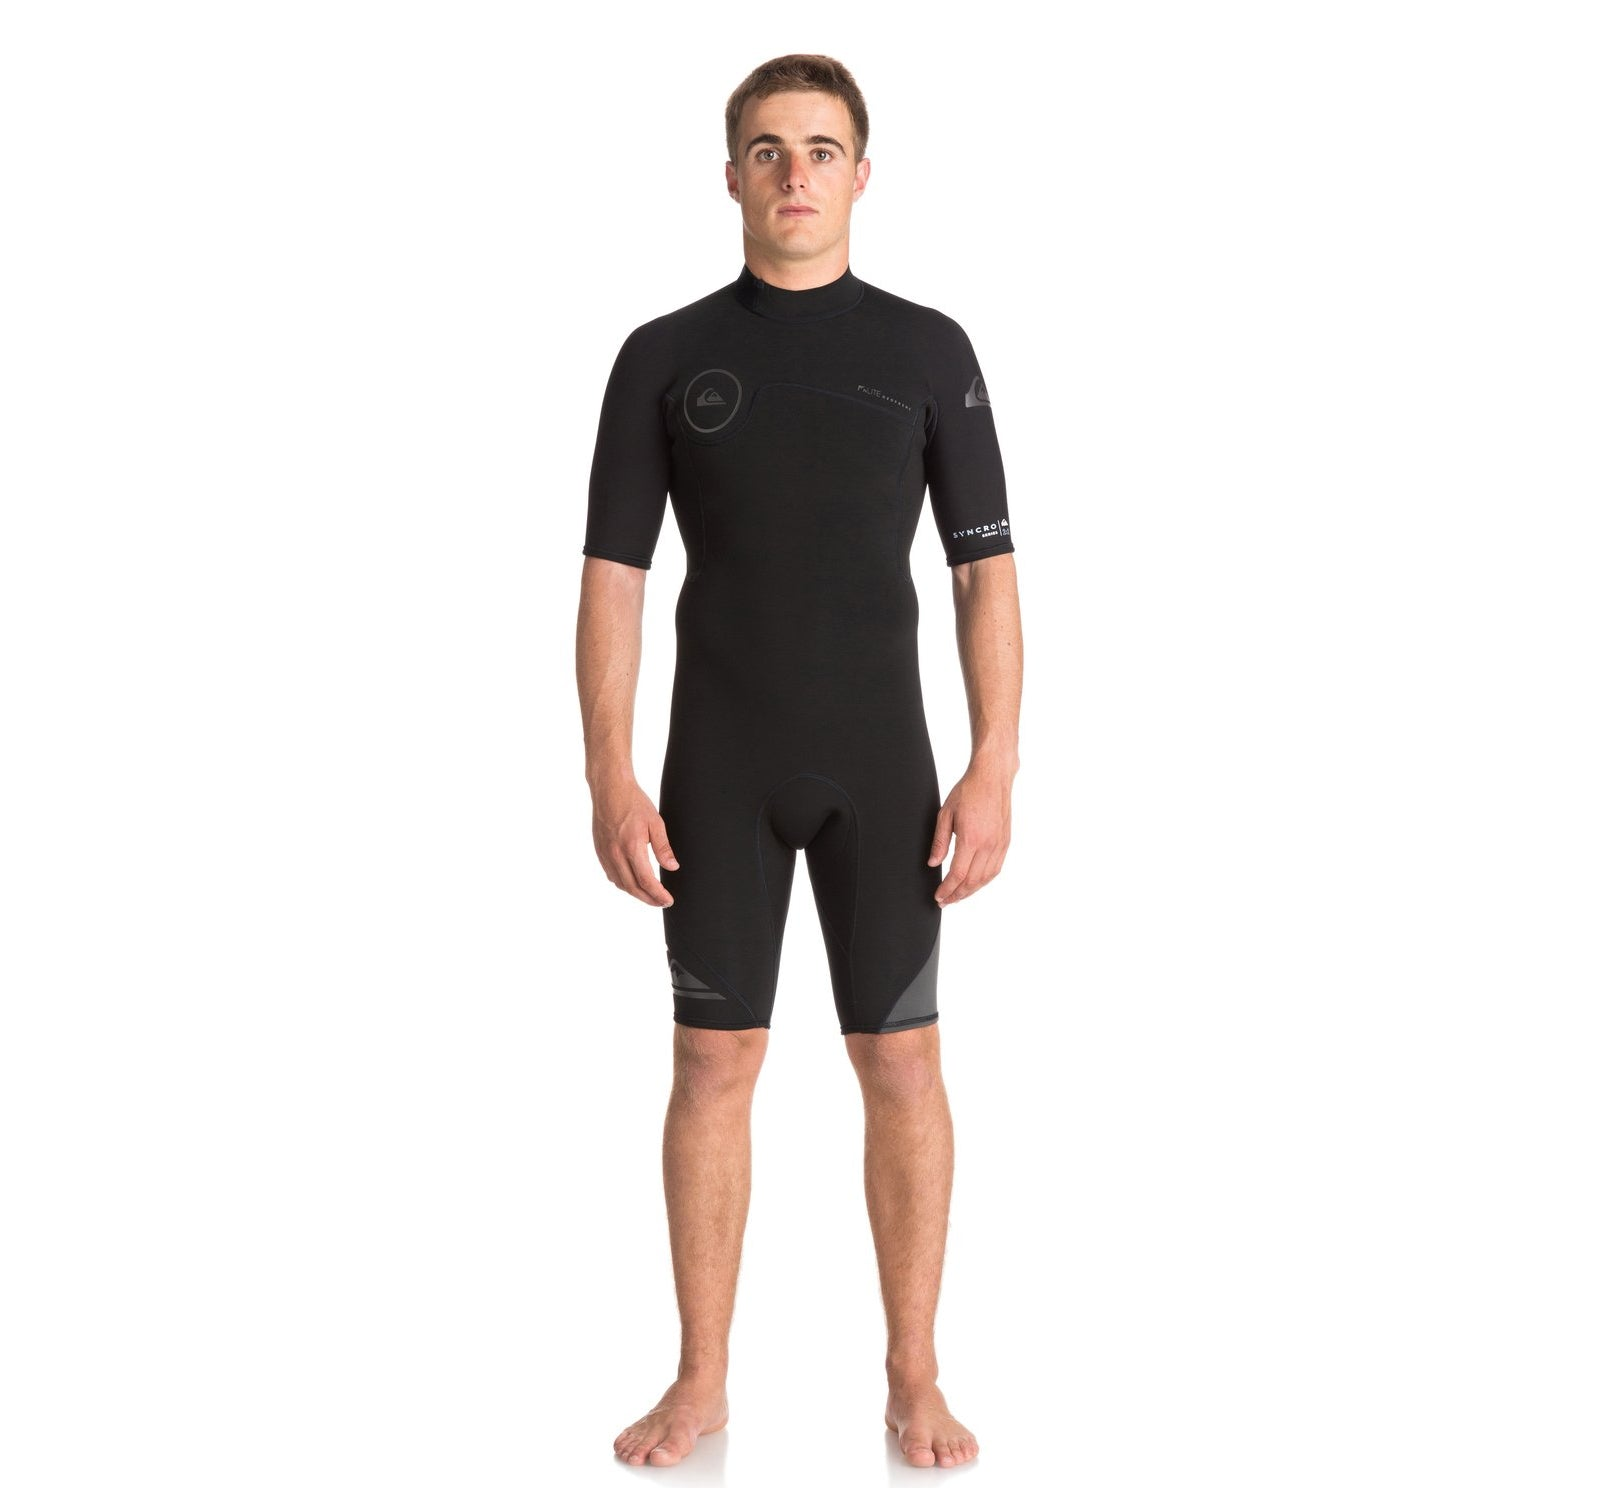 Quiksilver Syncro 2mm Back-Zip Men's S/S Springsuit Wetsuit